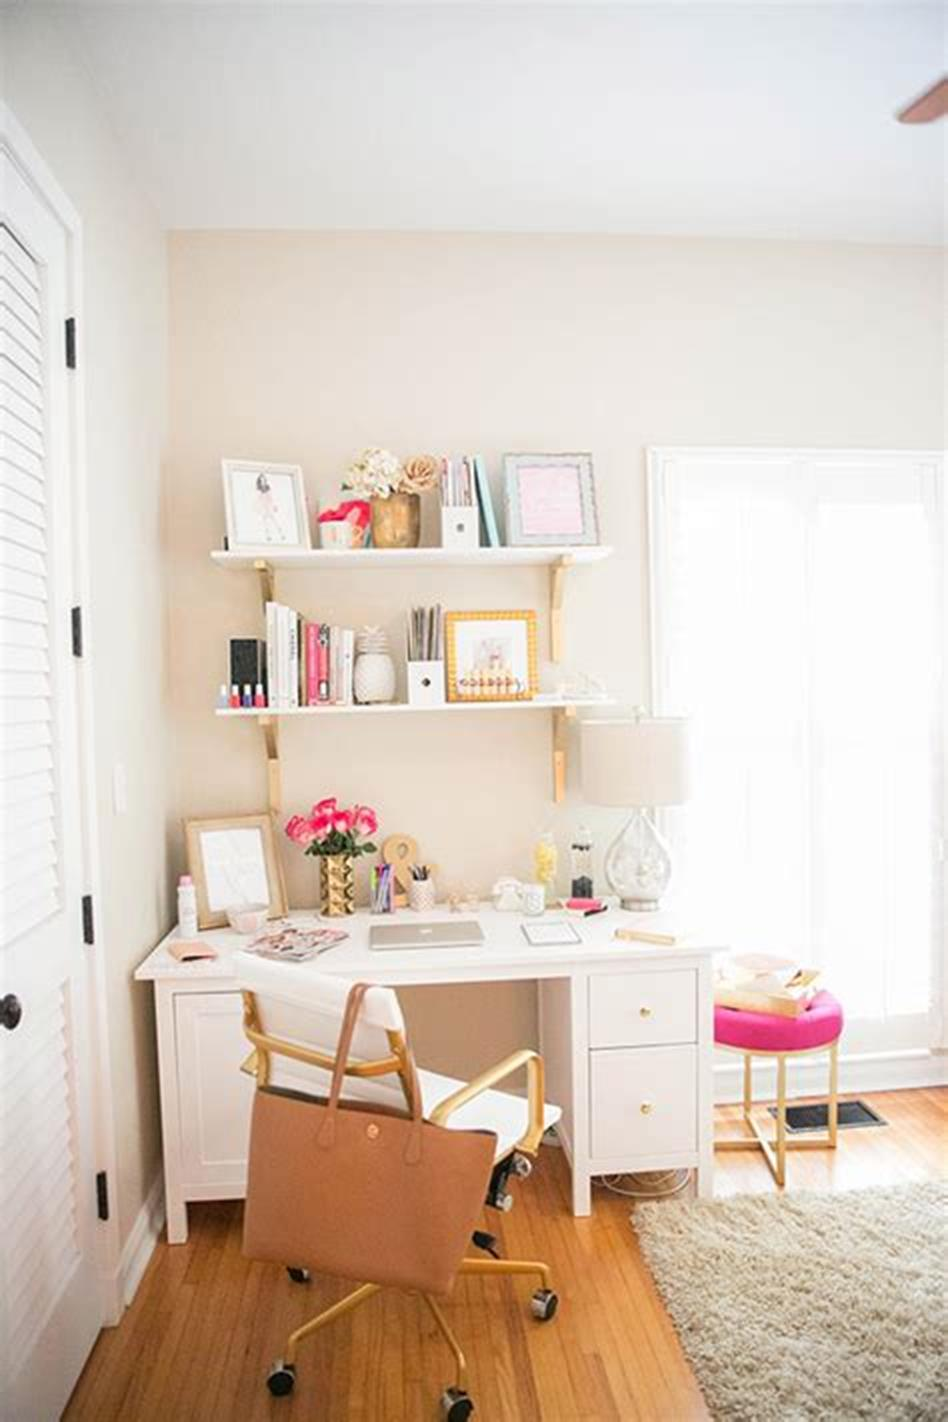 50 Best Small Space Office Decorating Ideas On a Budget 2019 57